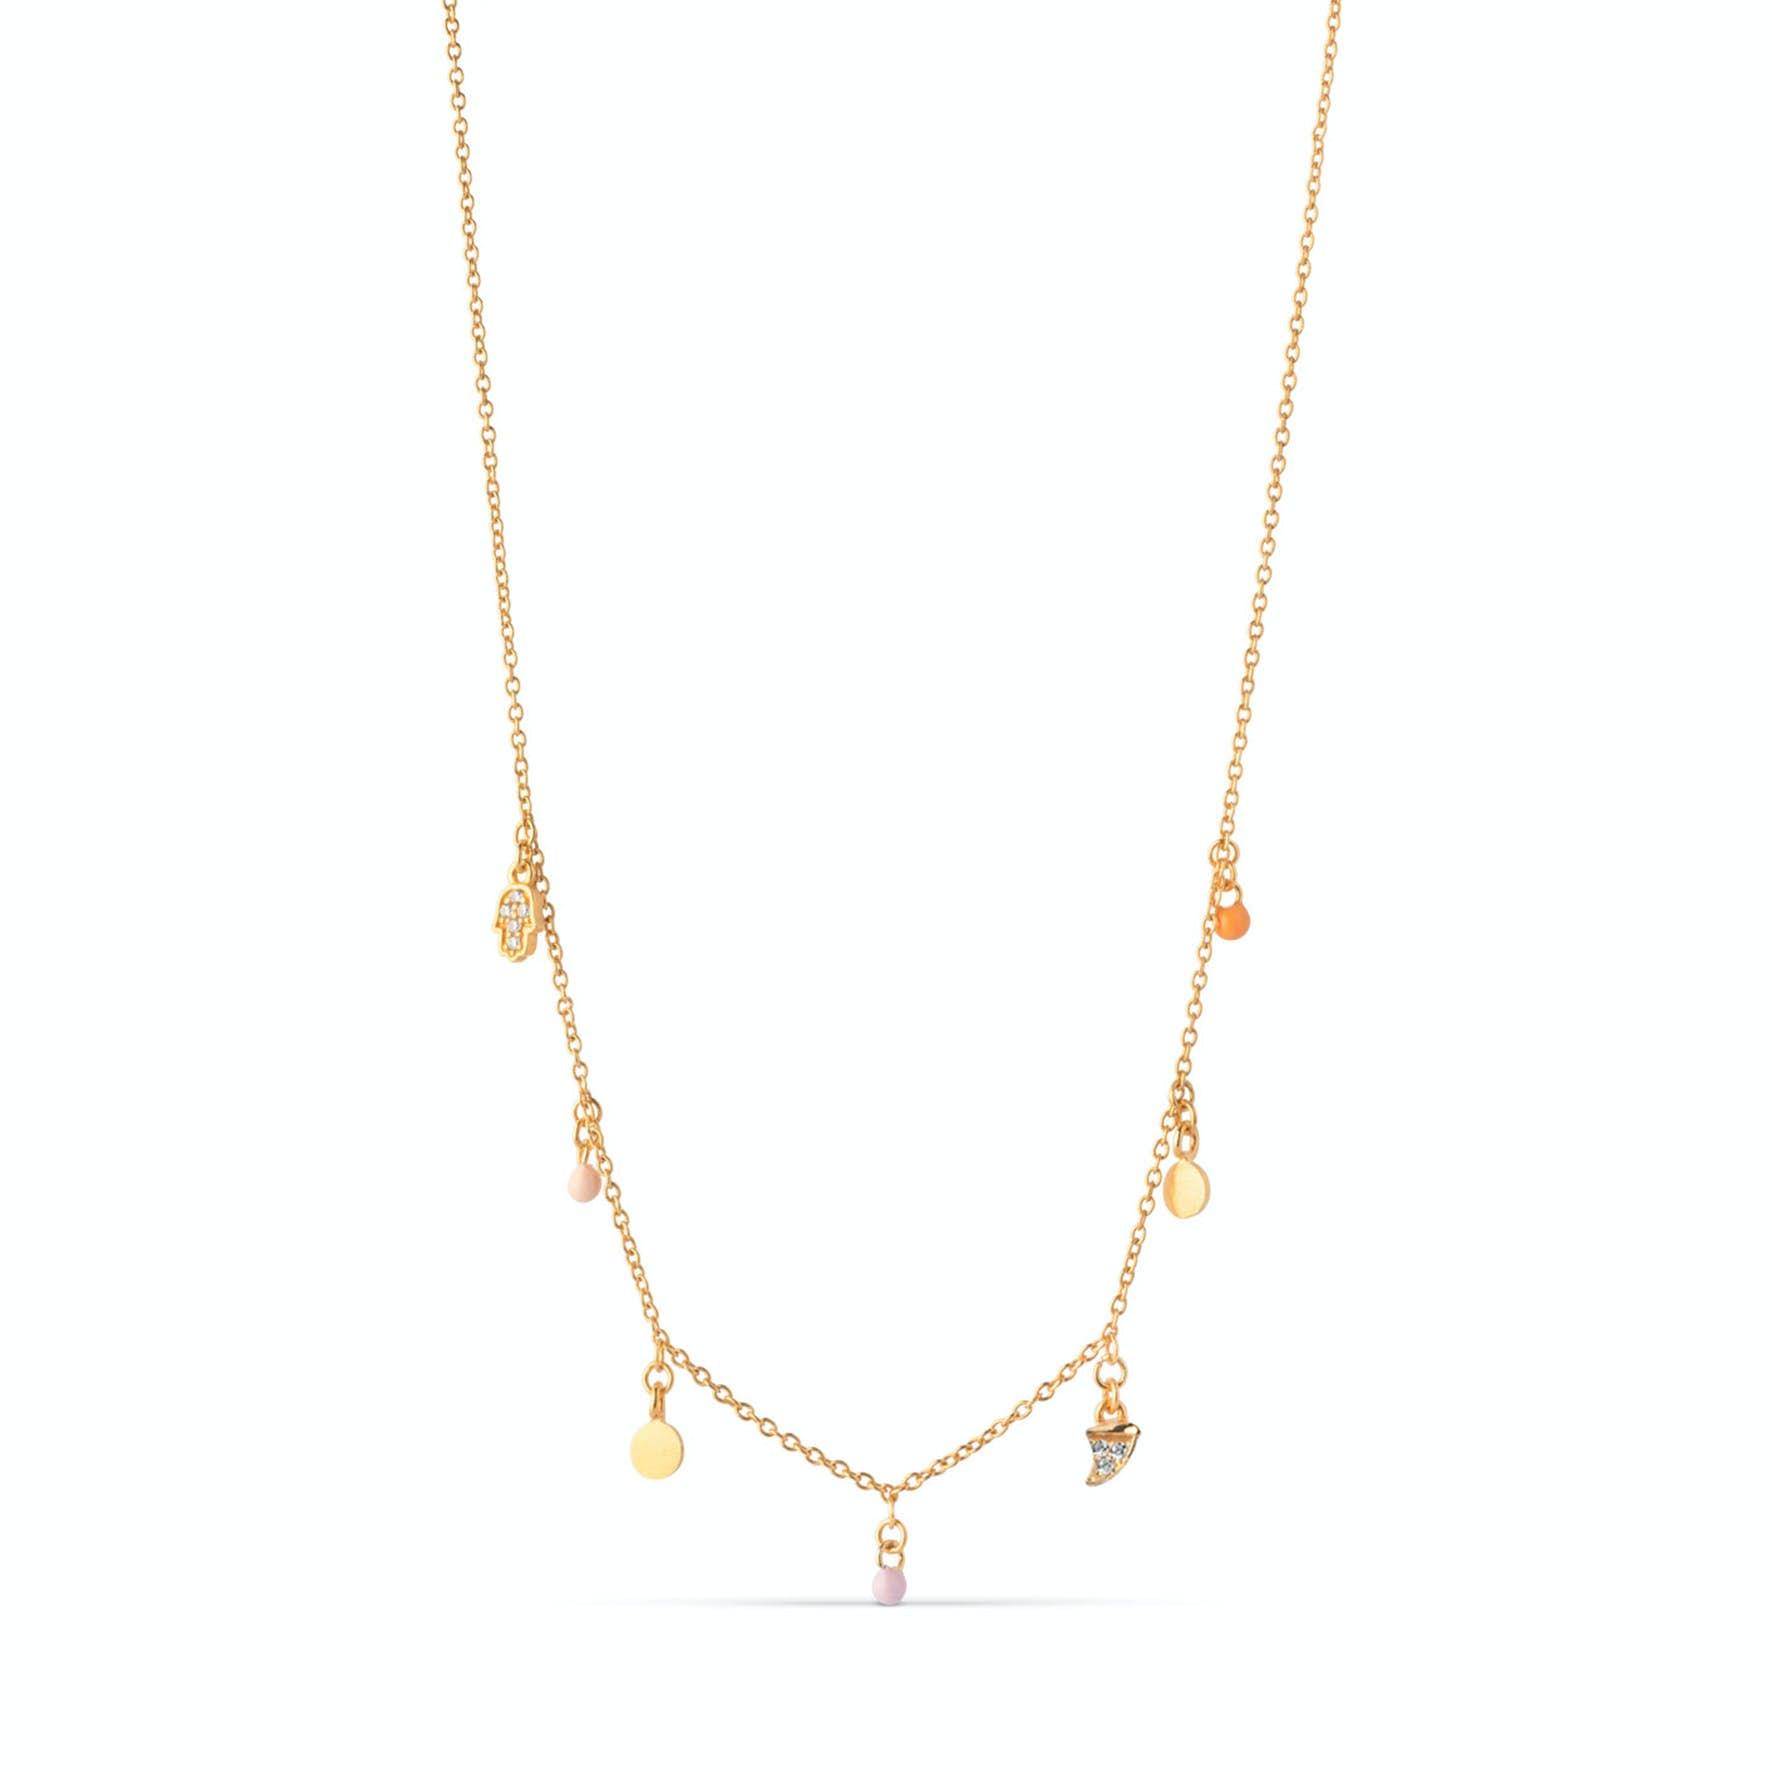 Lucky Charms Necklace from Enamel Copenhagen in Goldplated-Silver Sterling 925